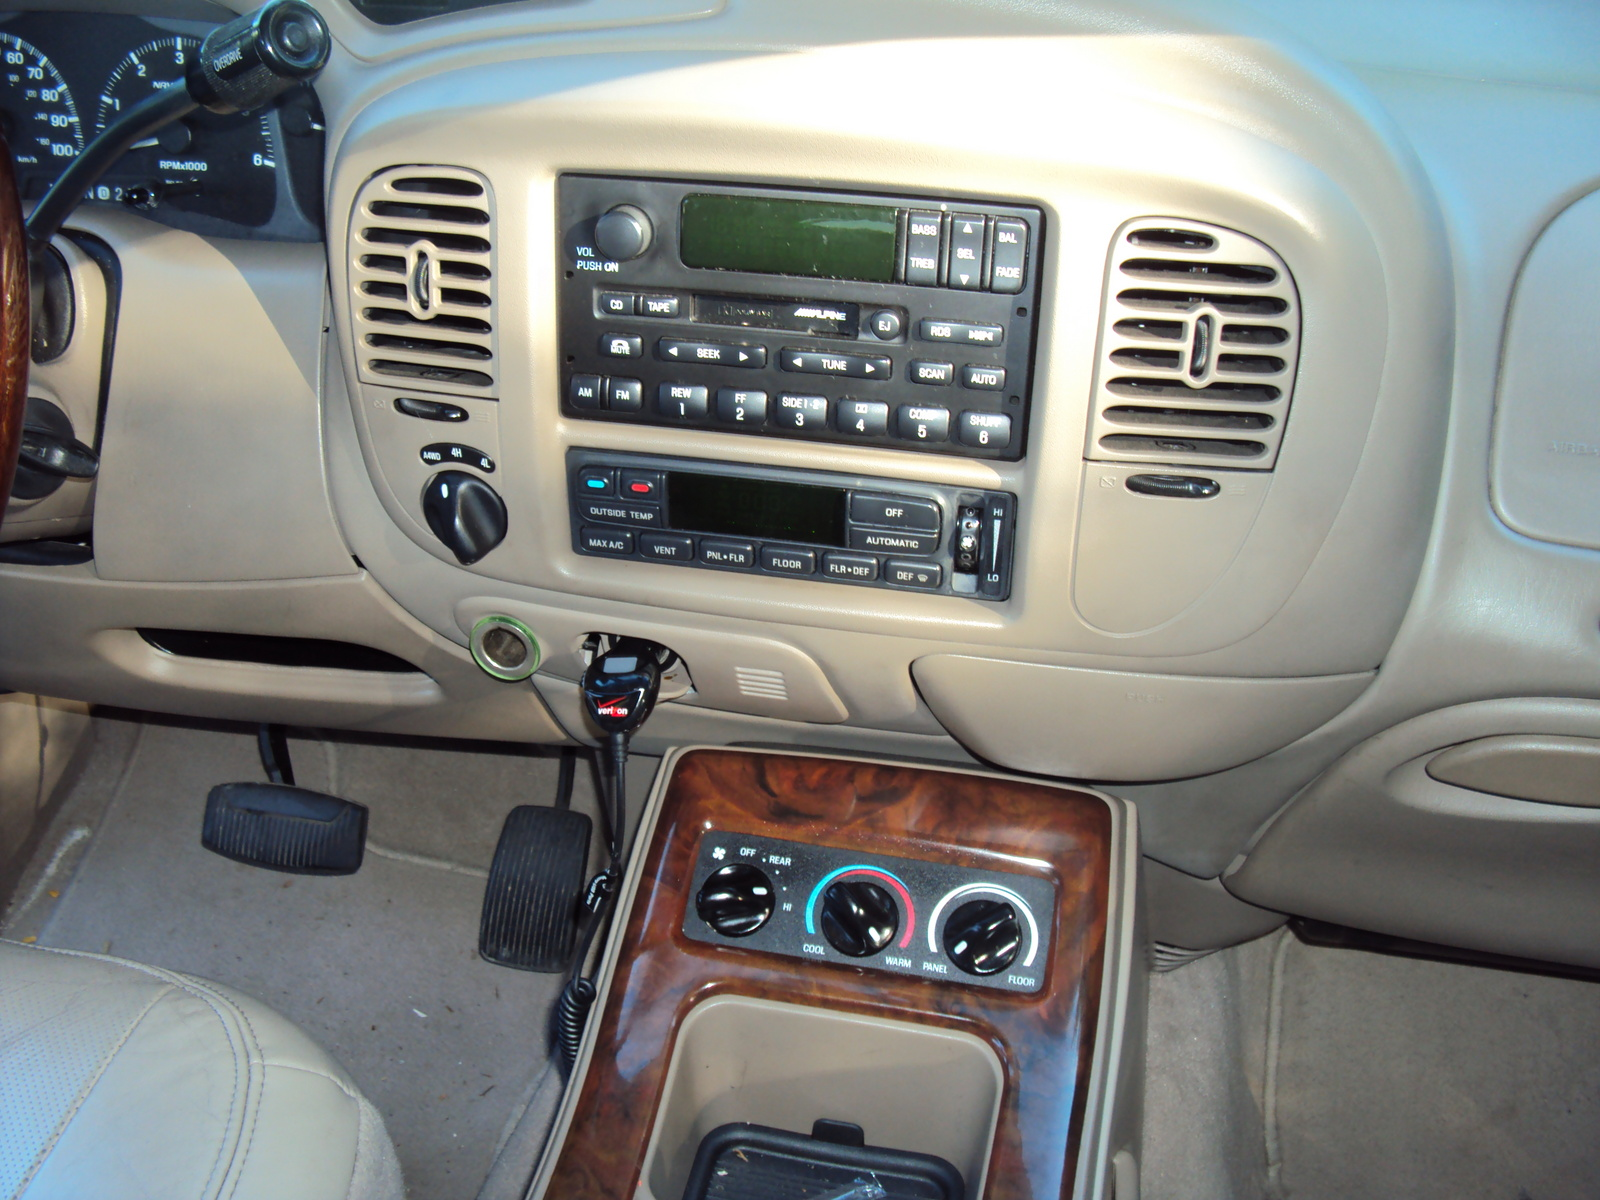 2001 lincoln navigator interior pictures cargurus. Black Bedroom Furniture Sets. Home Design Ideas